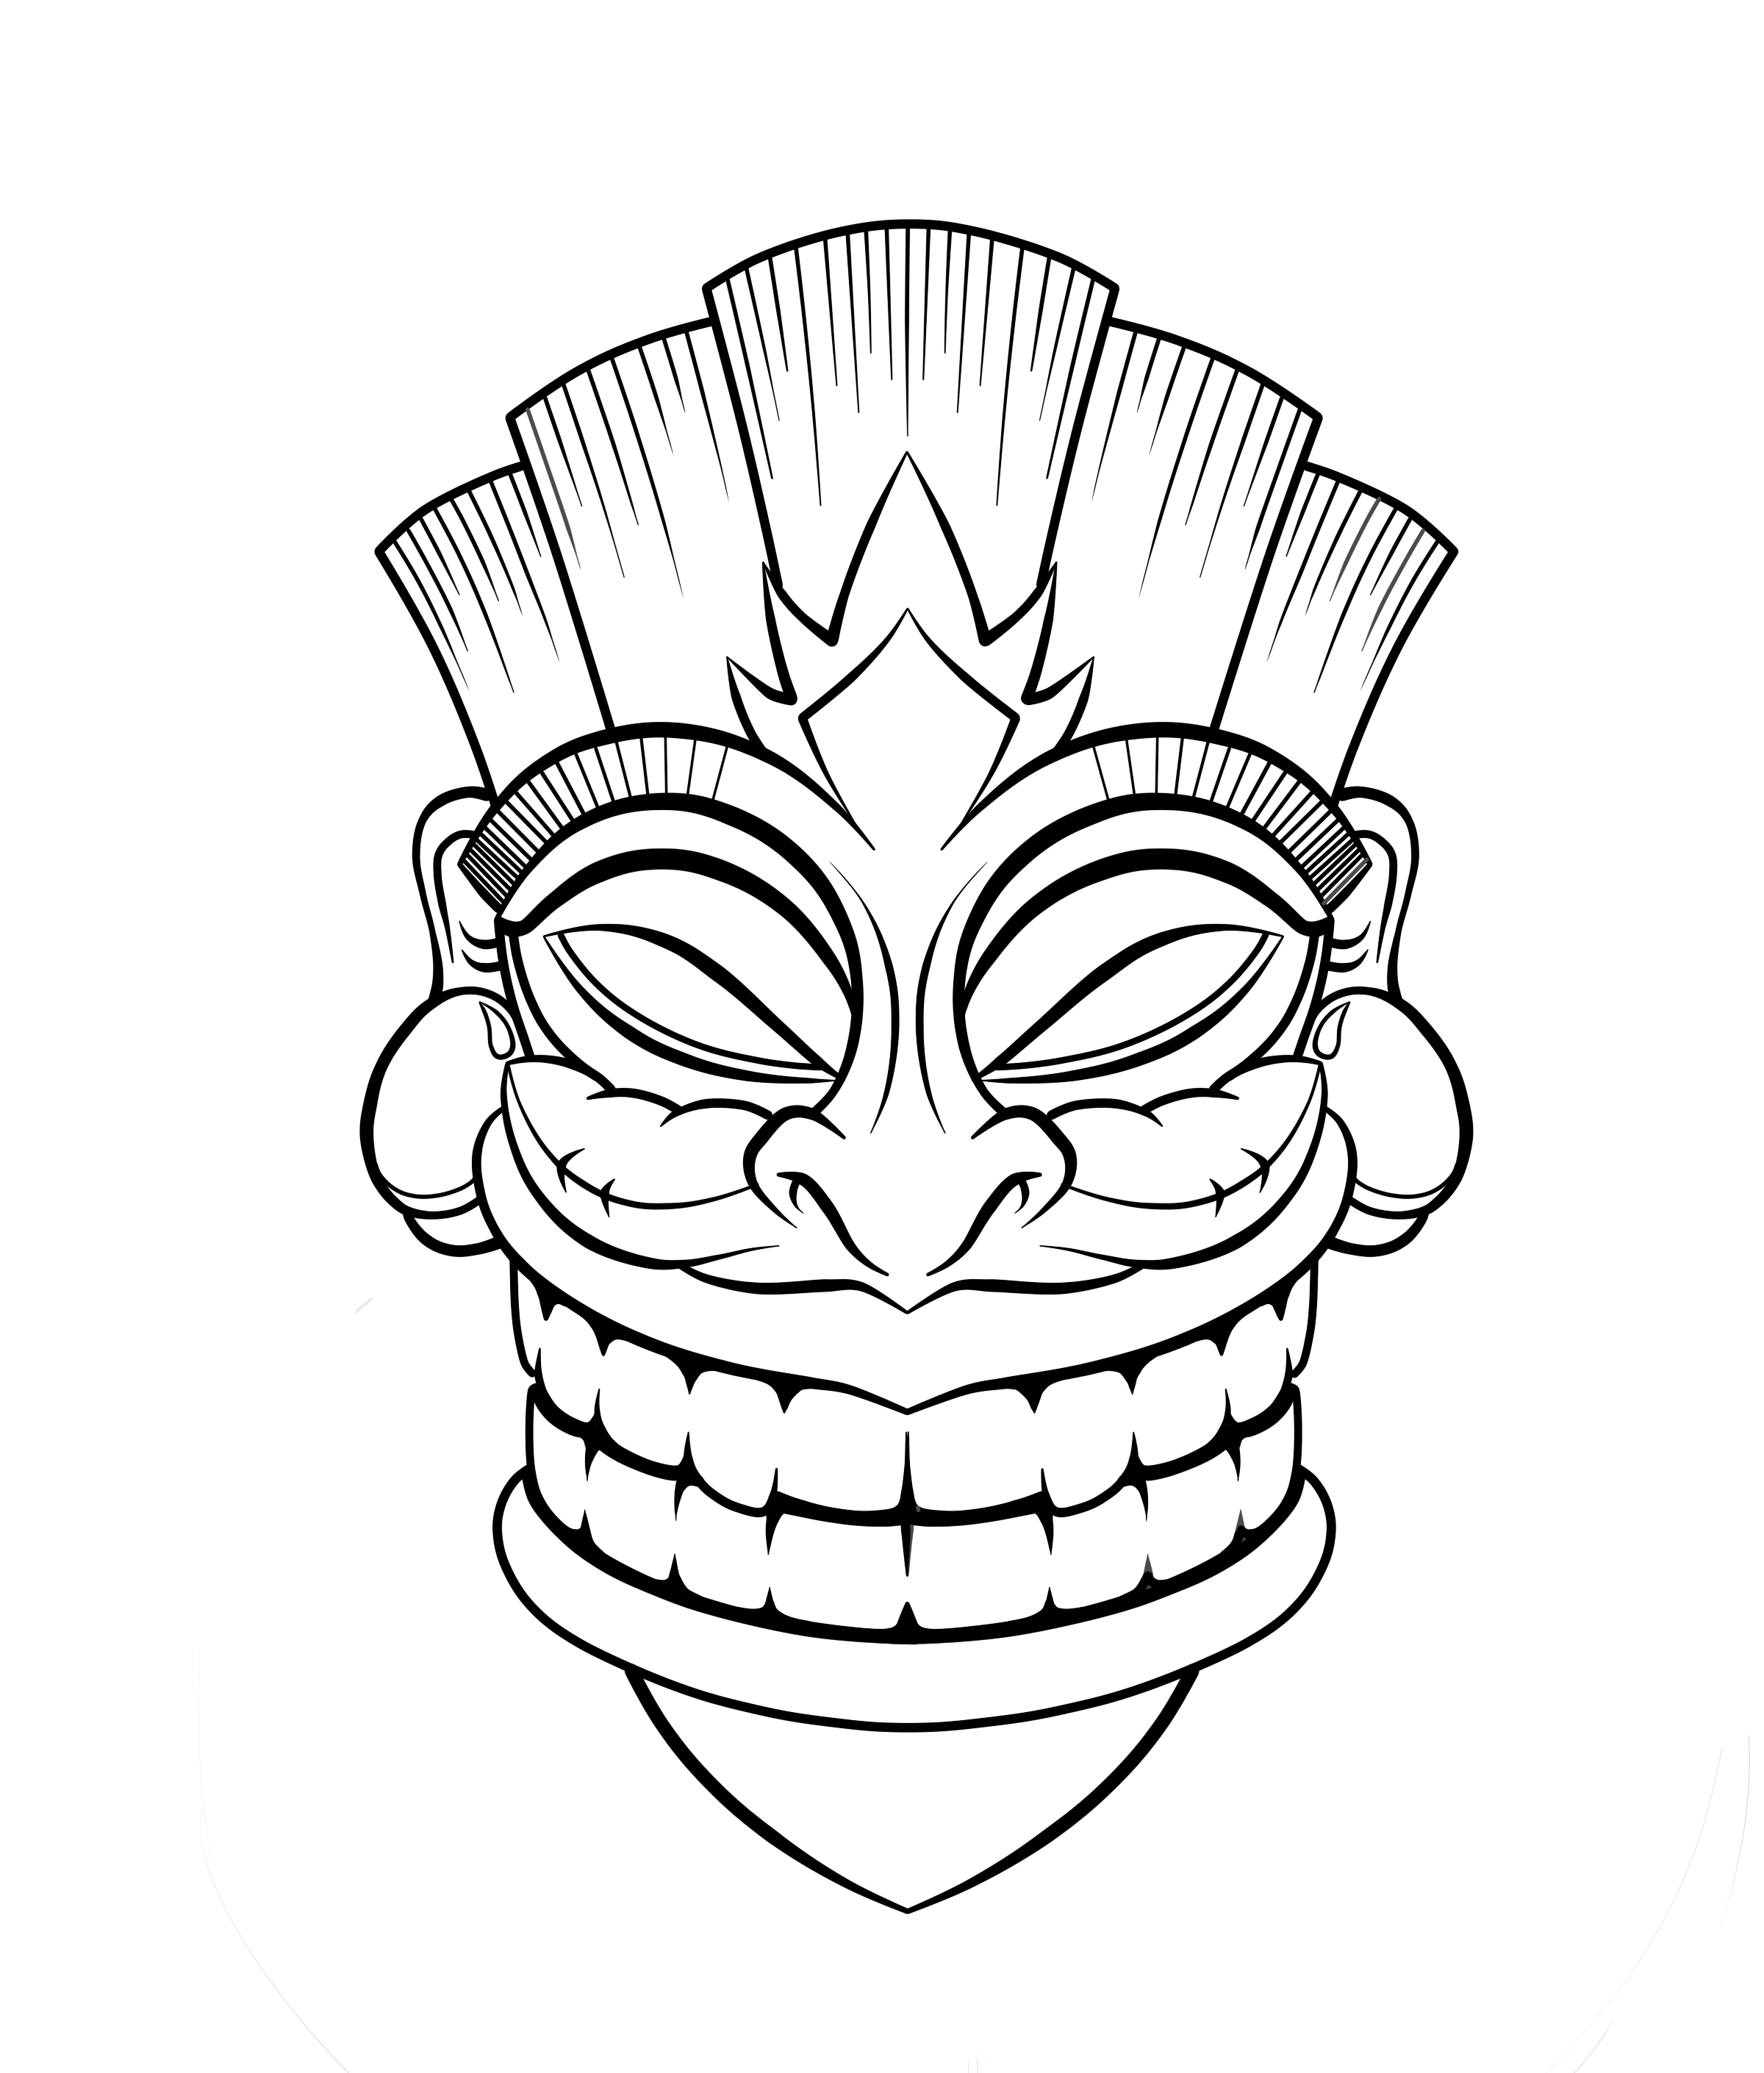 2400x2820 Tiki Mask Colouring Pages Lazy Town Kleurplaten Kleurboek Bedroom